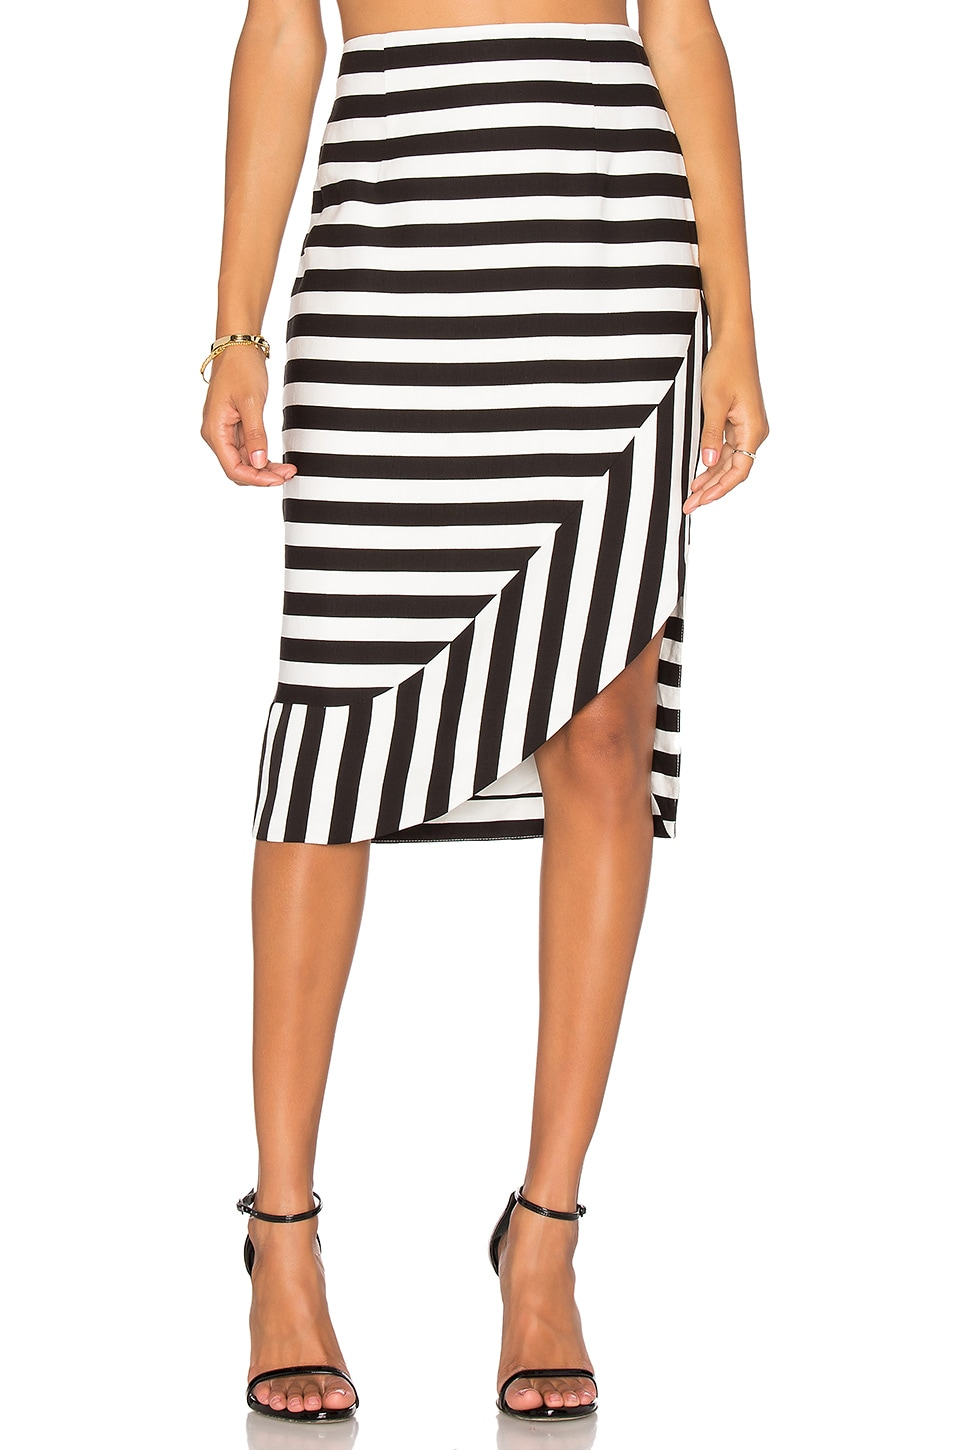 The Borsa Stripe Skirt by TY-LR